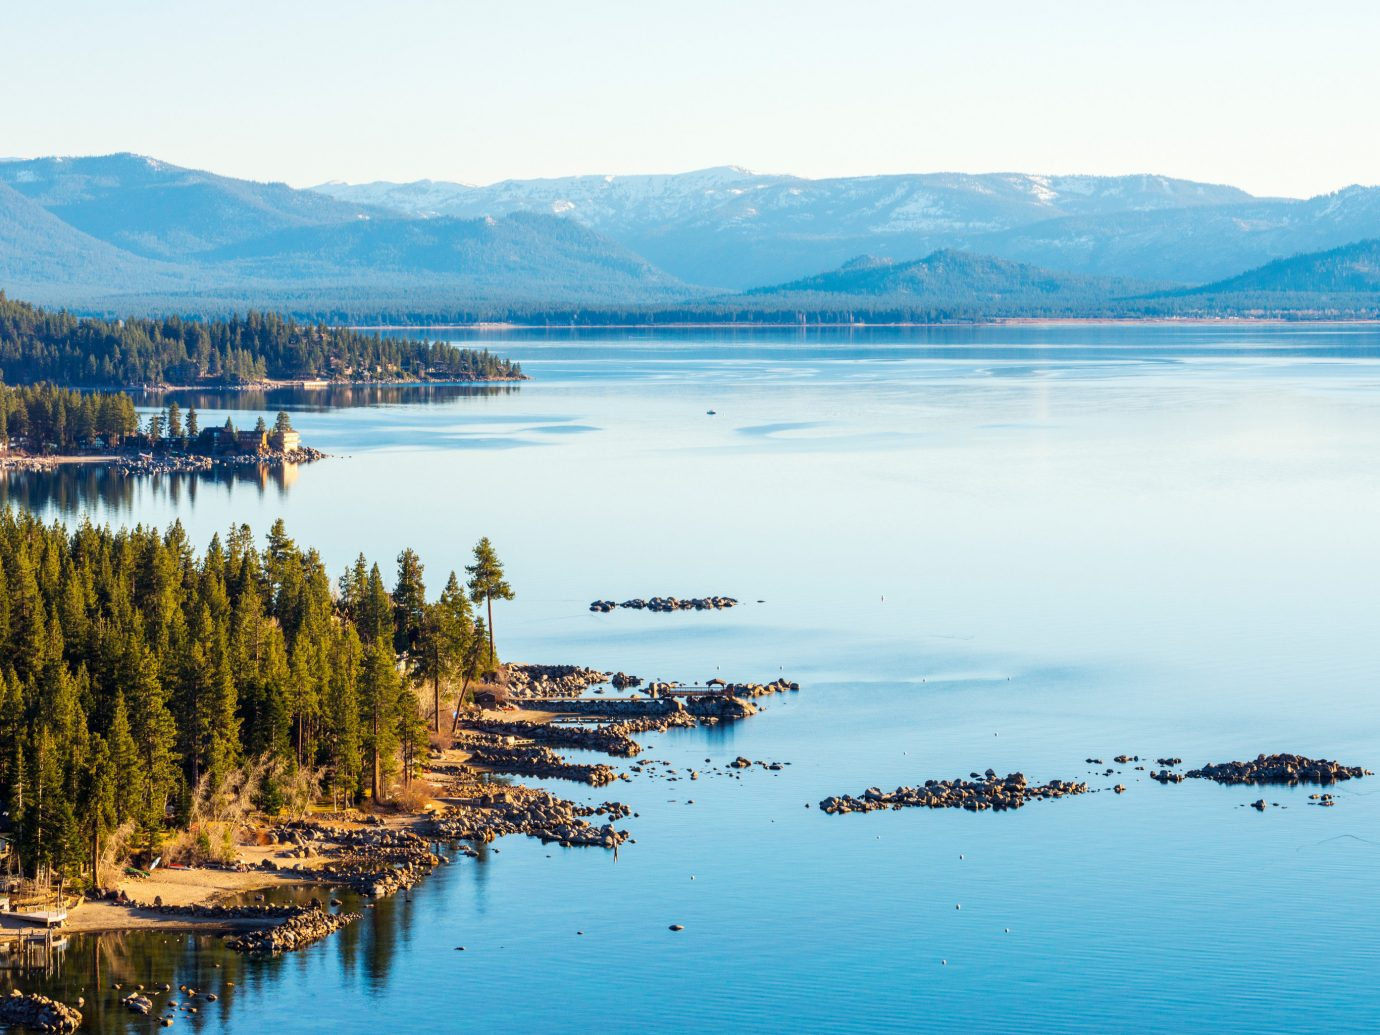 Trip Ideas water outdoor Lake sky mountain Nature reflection body of water wilderness loch shore Sea reservoir flock bay landscape crater lake pond surrounded